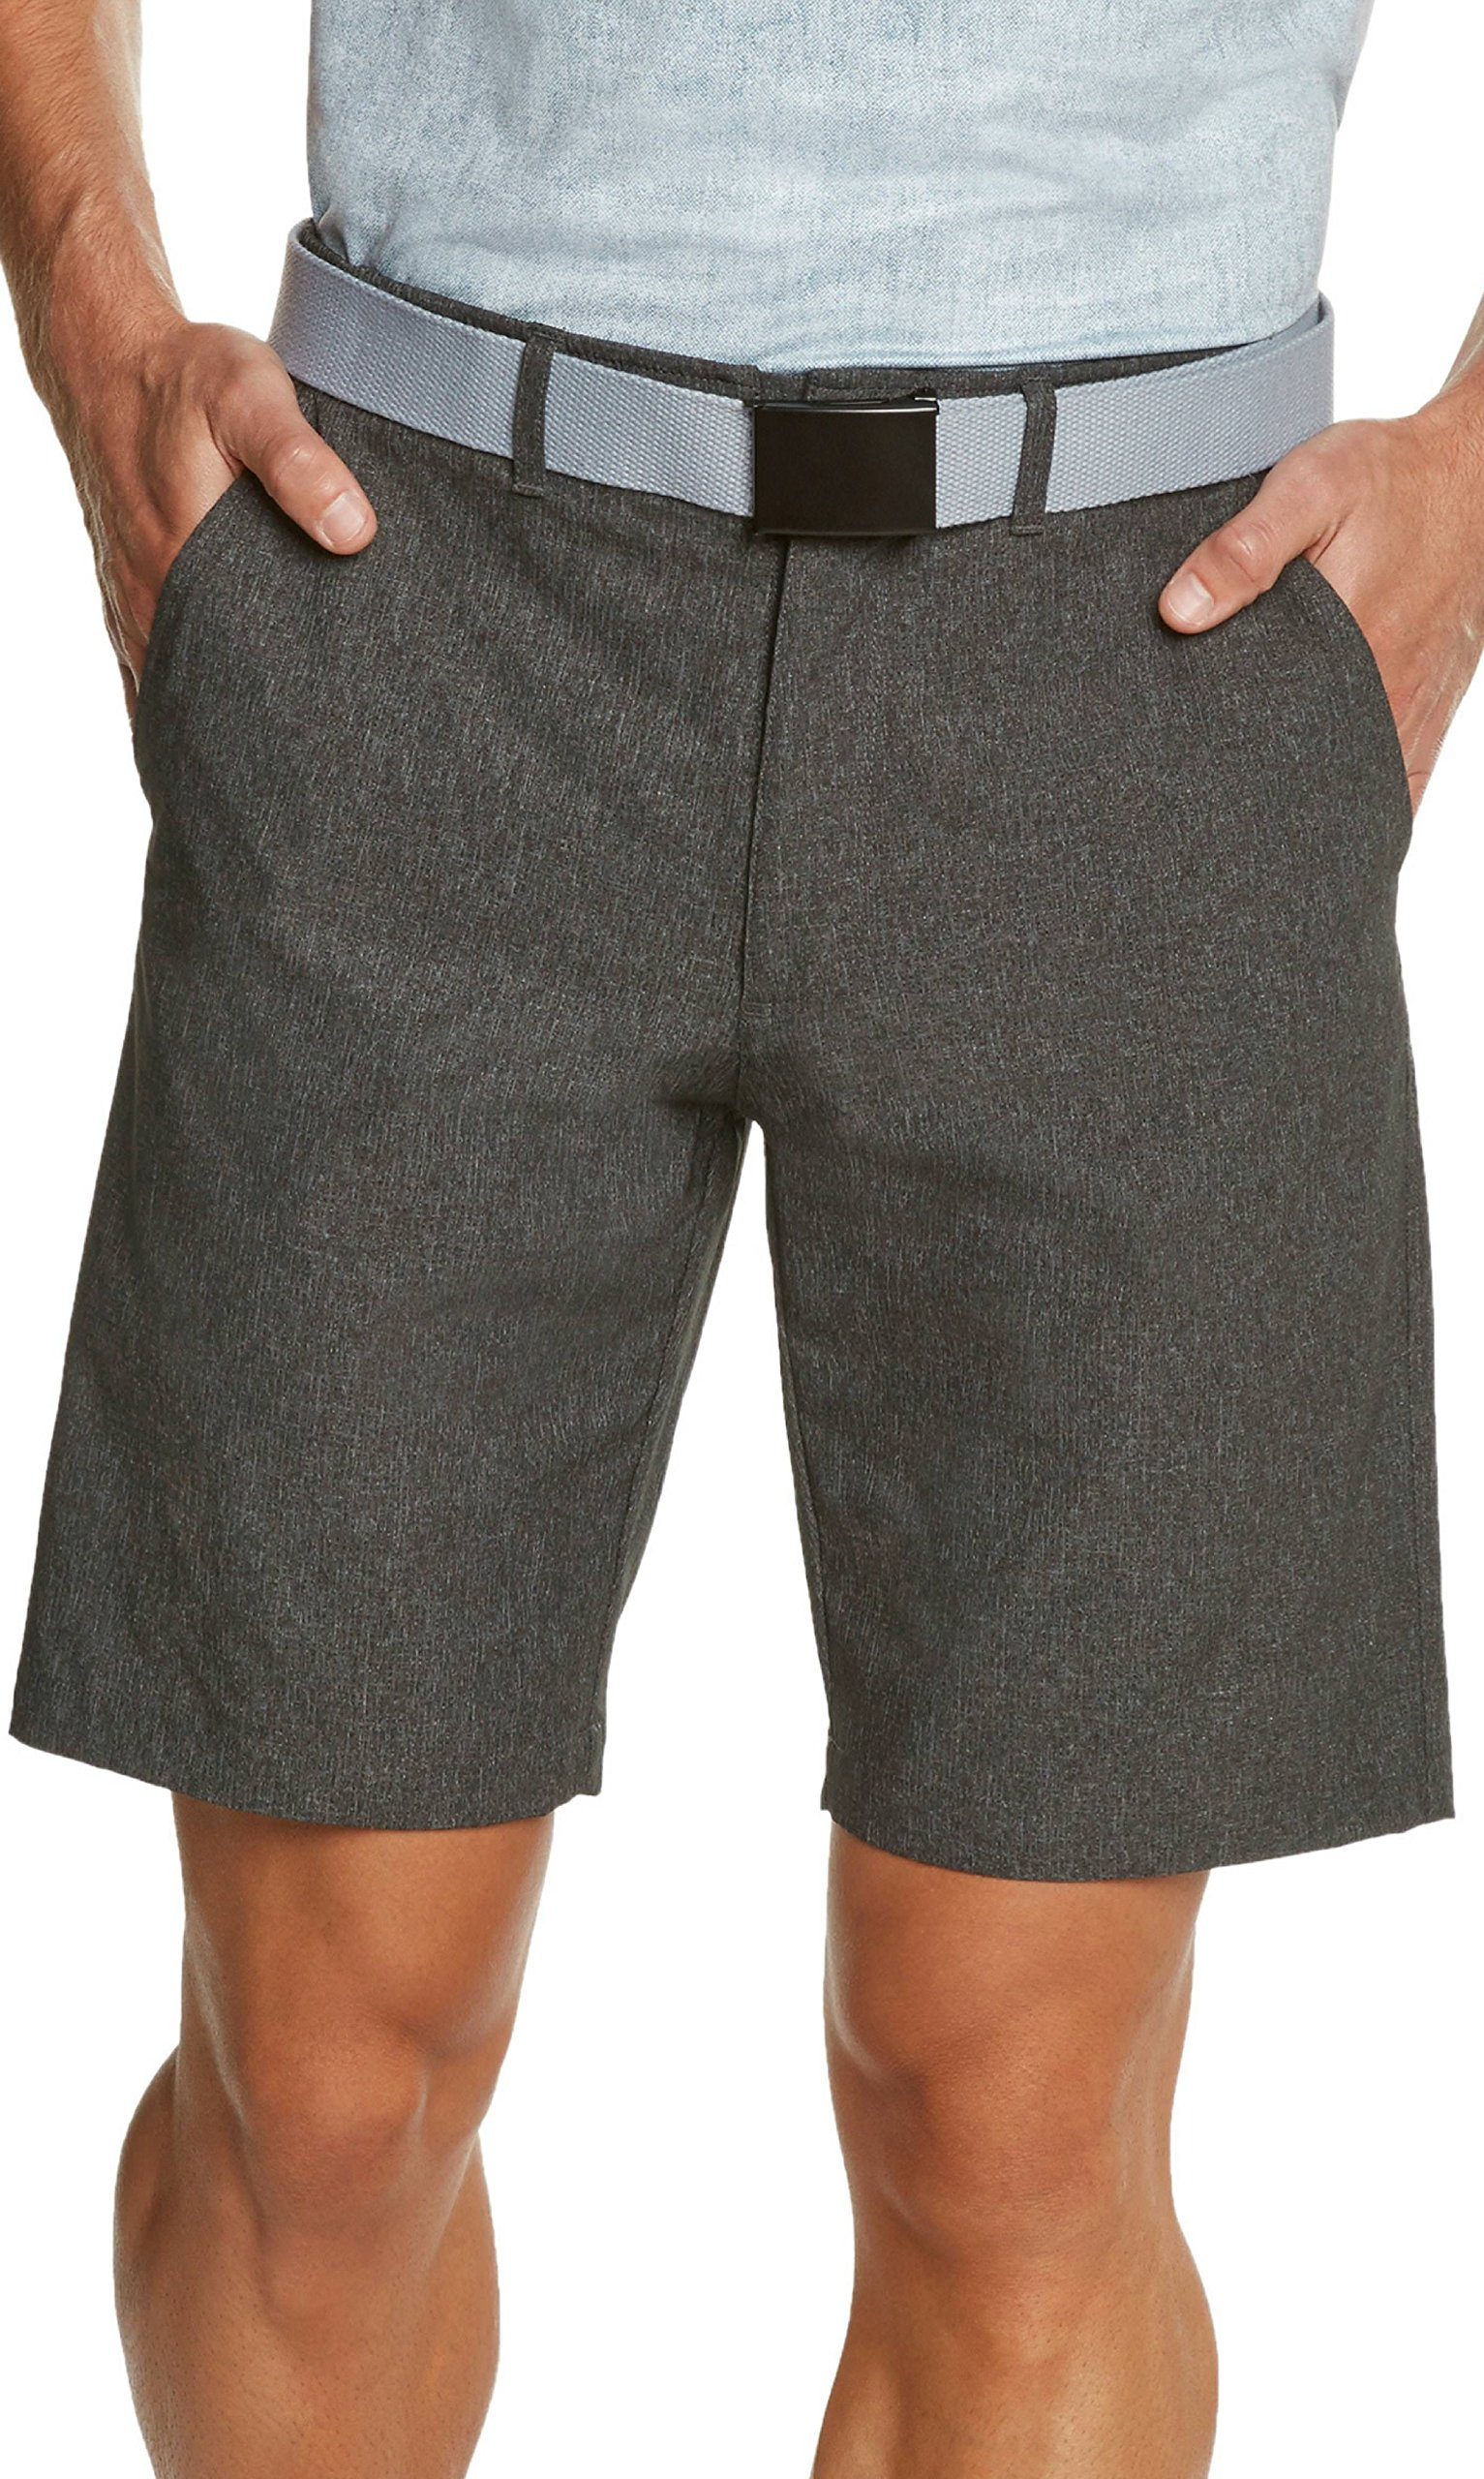 Dry Fit Golf Shorts for Men - Casual Mens Shorts Moisture Wicking - Men's Chino Shorts with Elastic Waistband by Three Sixty Six